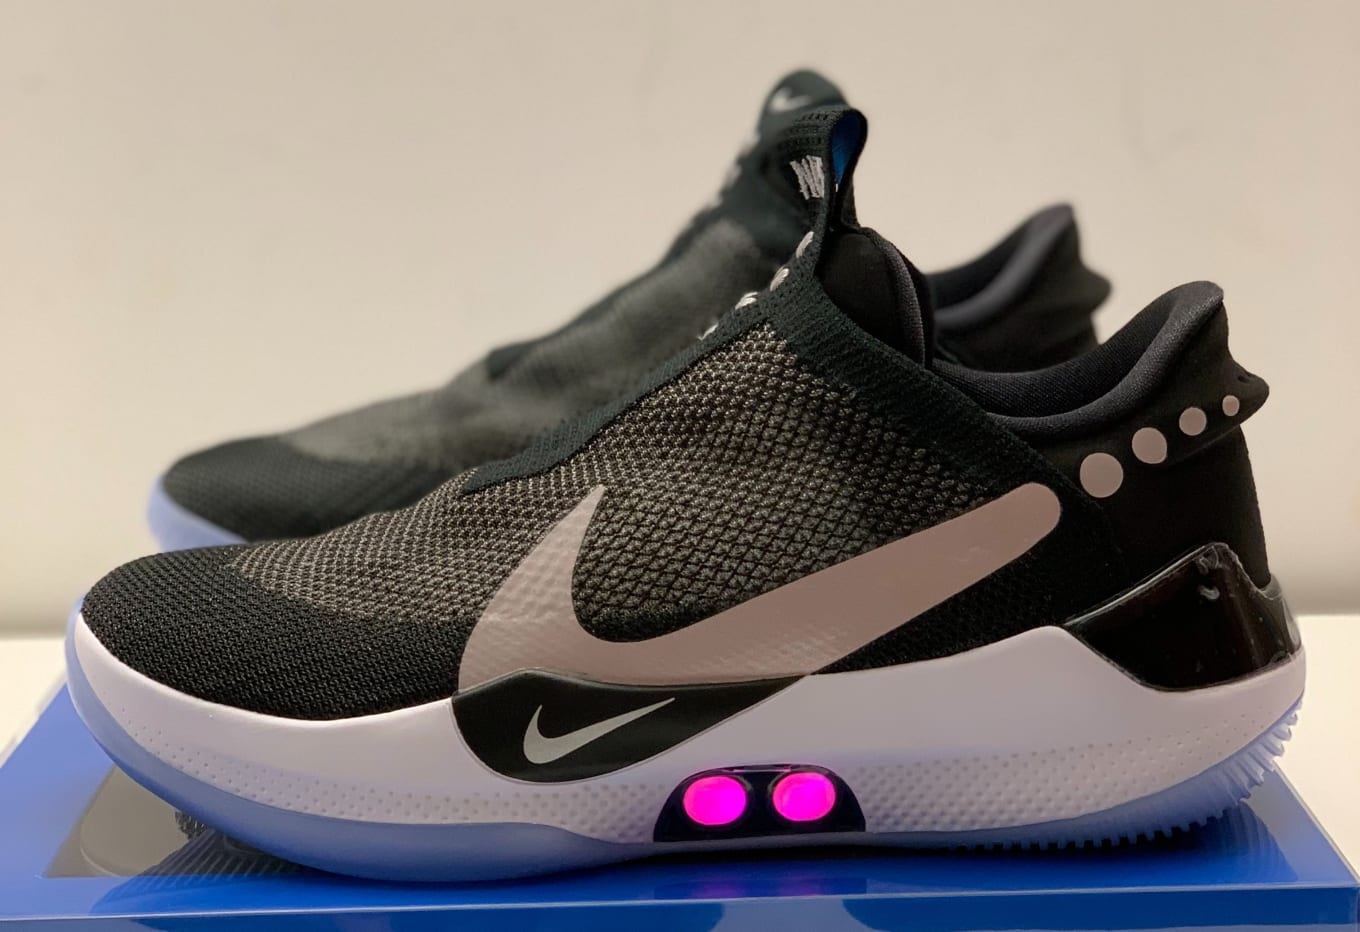 6366fd0cc43 Nike Adapt BB Release Date | Sole Collector